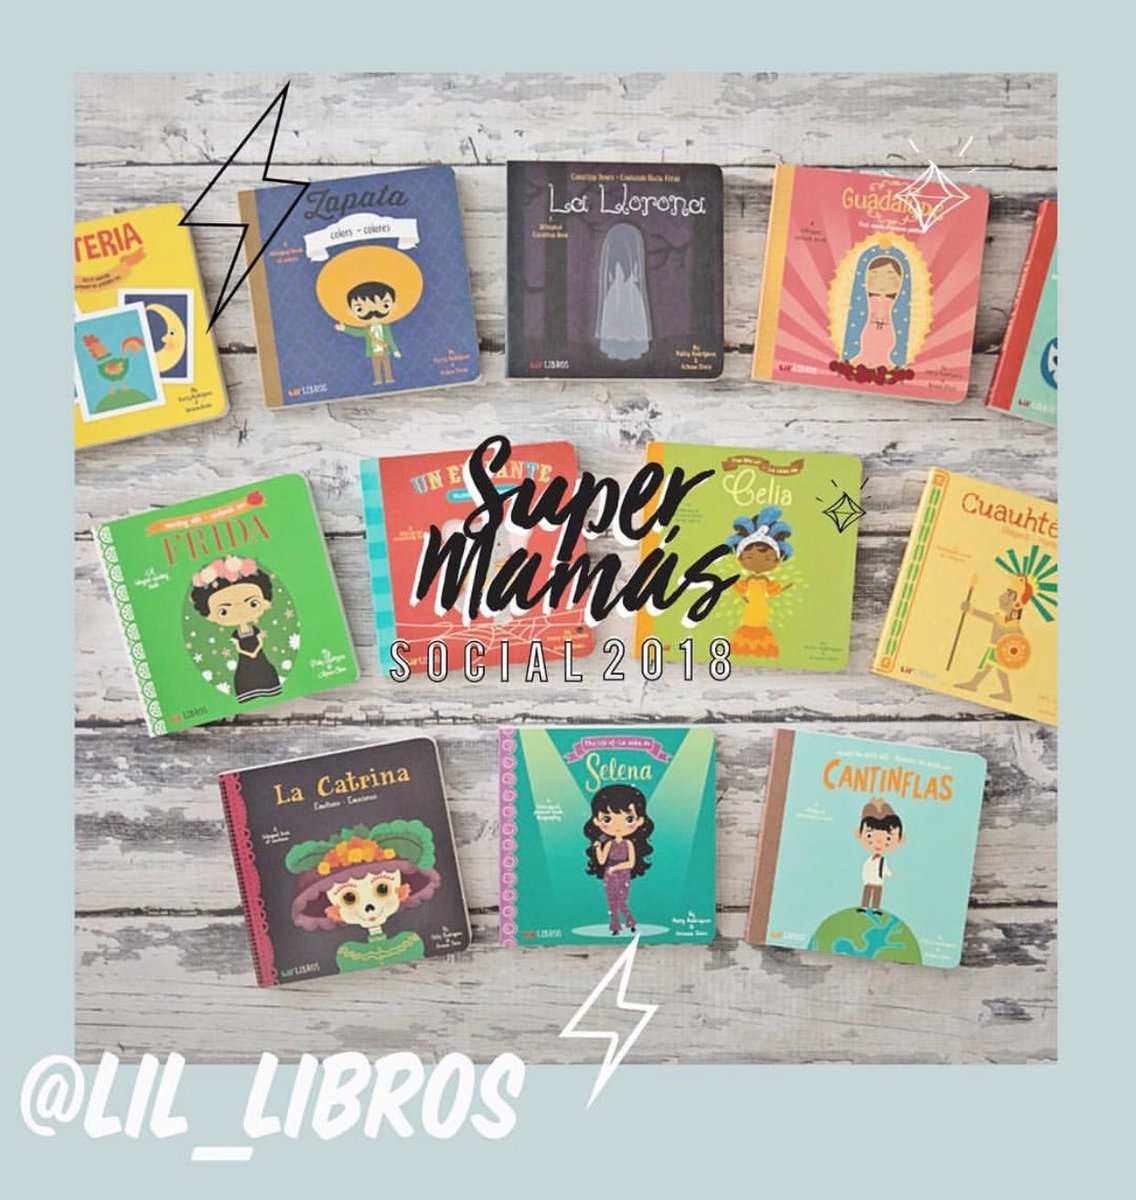 Grab your favorite titles and complete your @littlelibros collection at the #SMSocial18 !!